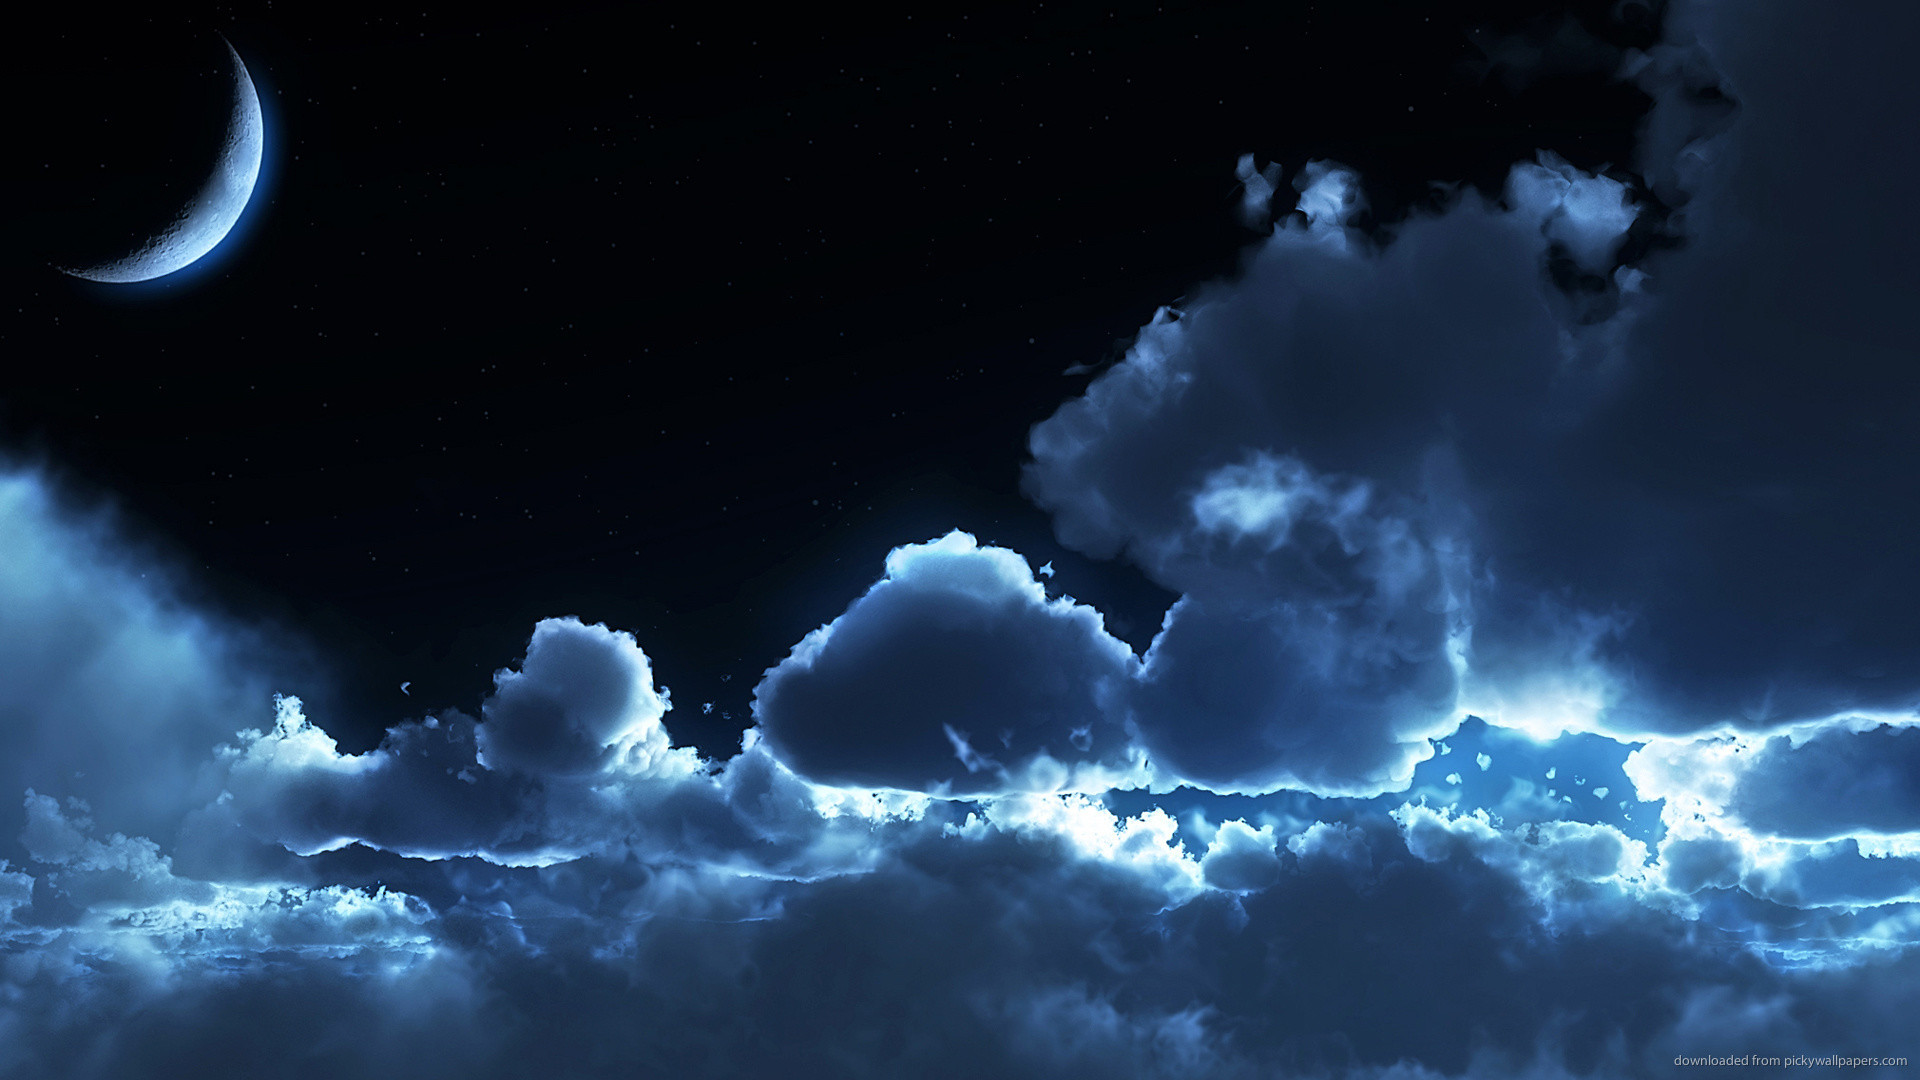 1280×1024 Night Blue Clouds and Moon wallpaper